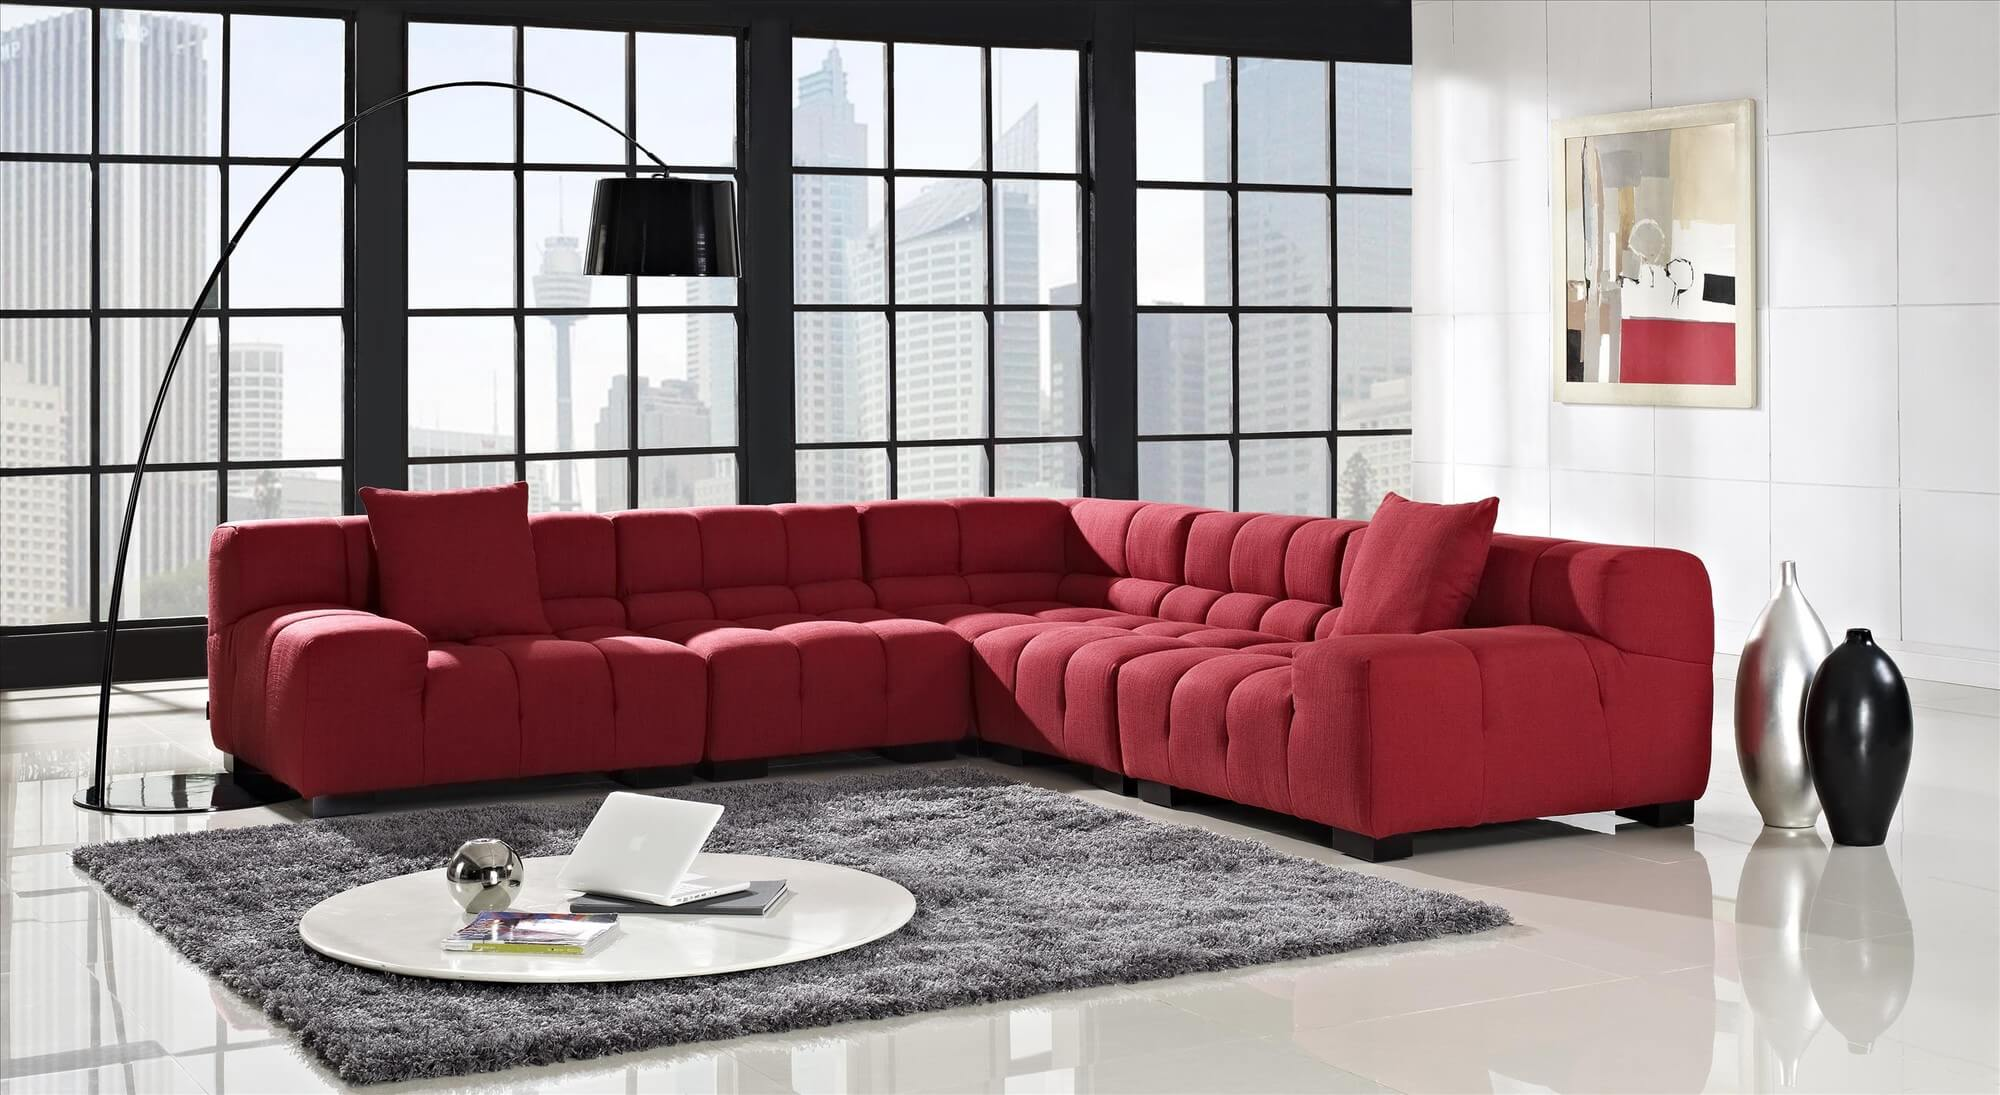 This Solid Wood Frame Red Woven Fabric Sectional Offers A Tufted Upholstery  Pattern. Seating Is .